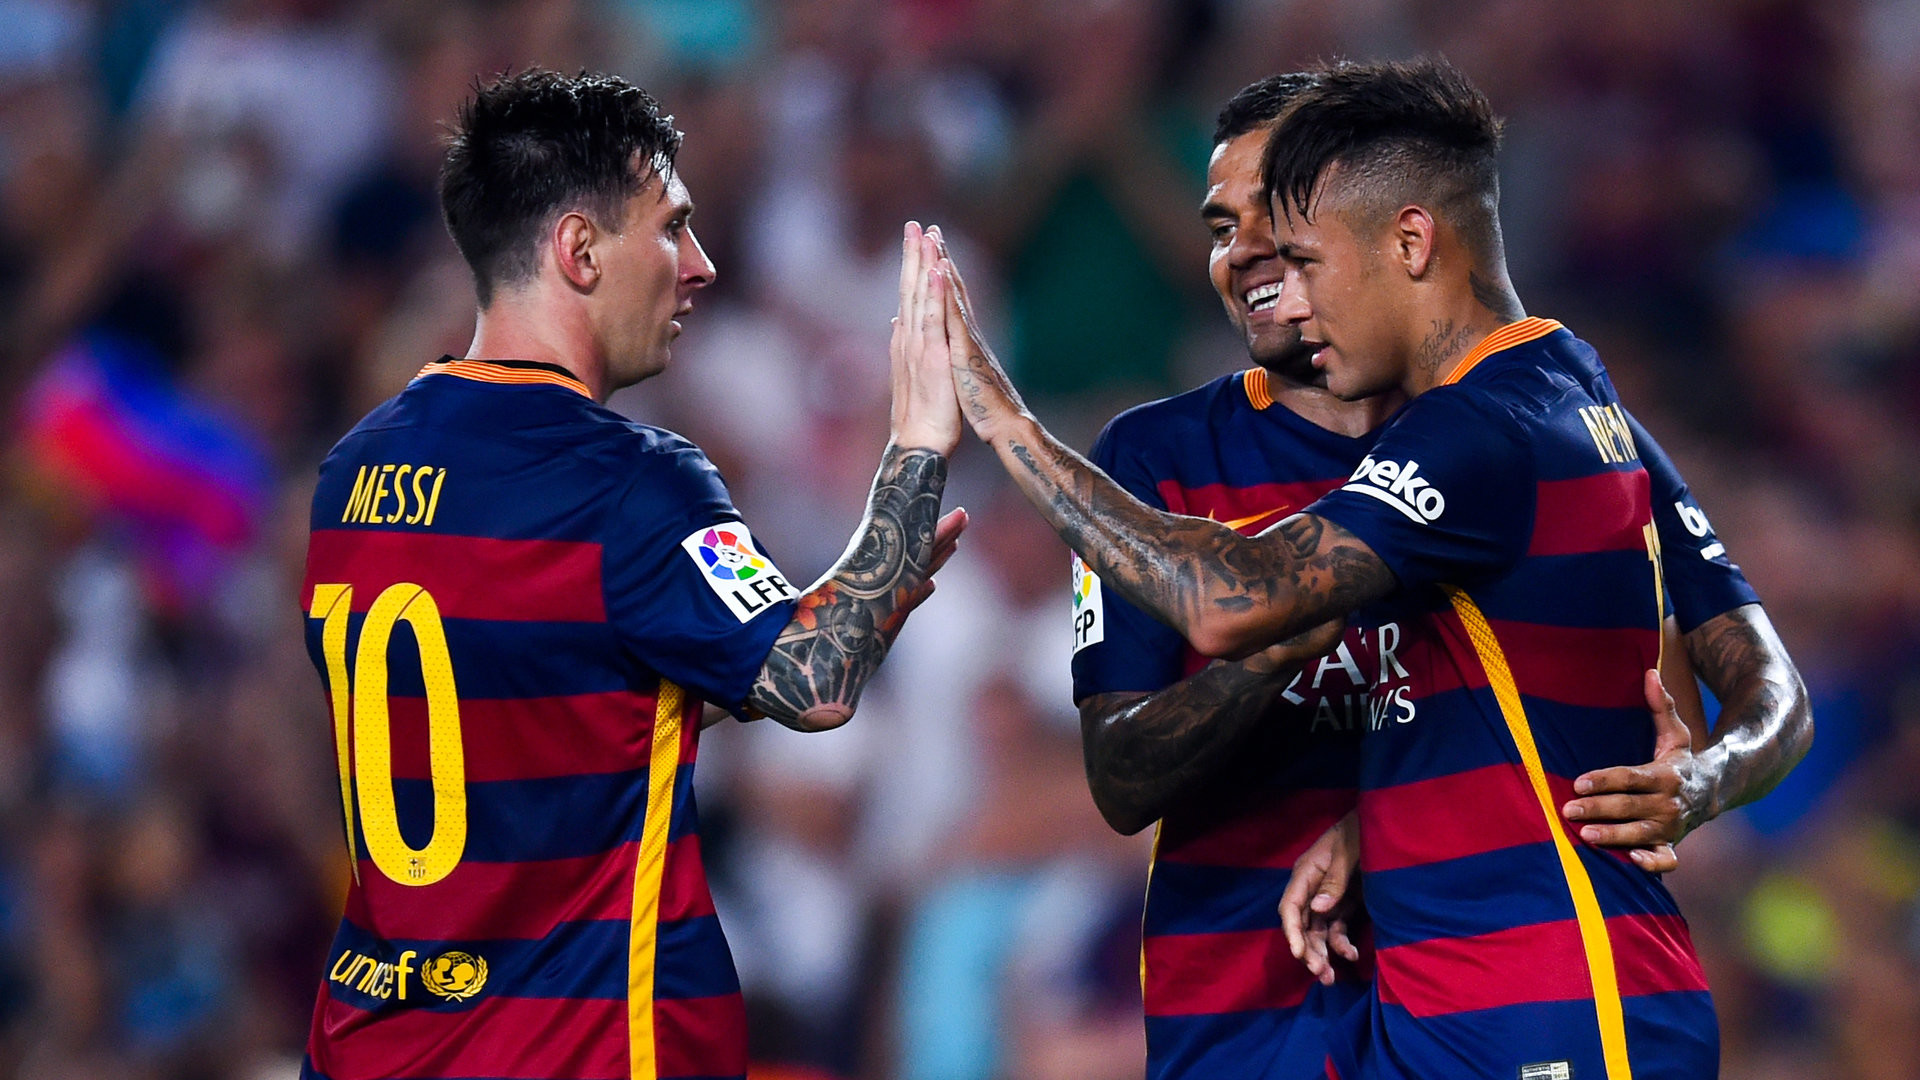 Pulled apart by Messi's Barcelona – Neymar's 2011 FIFA Club World Cup final  revisited – Goal.com